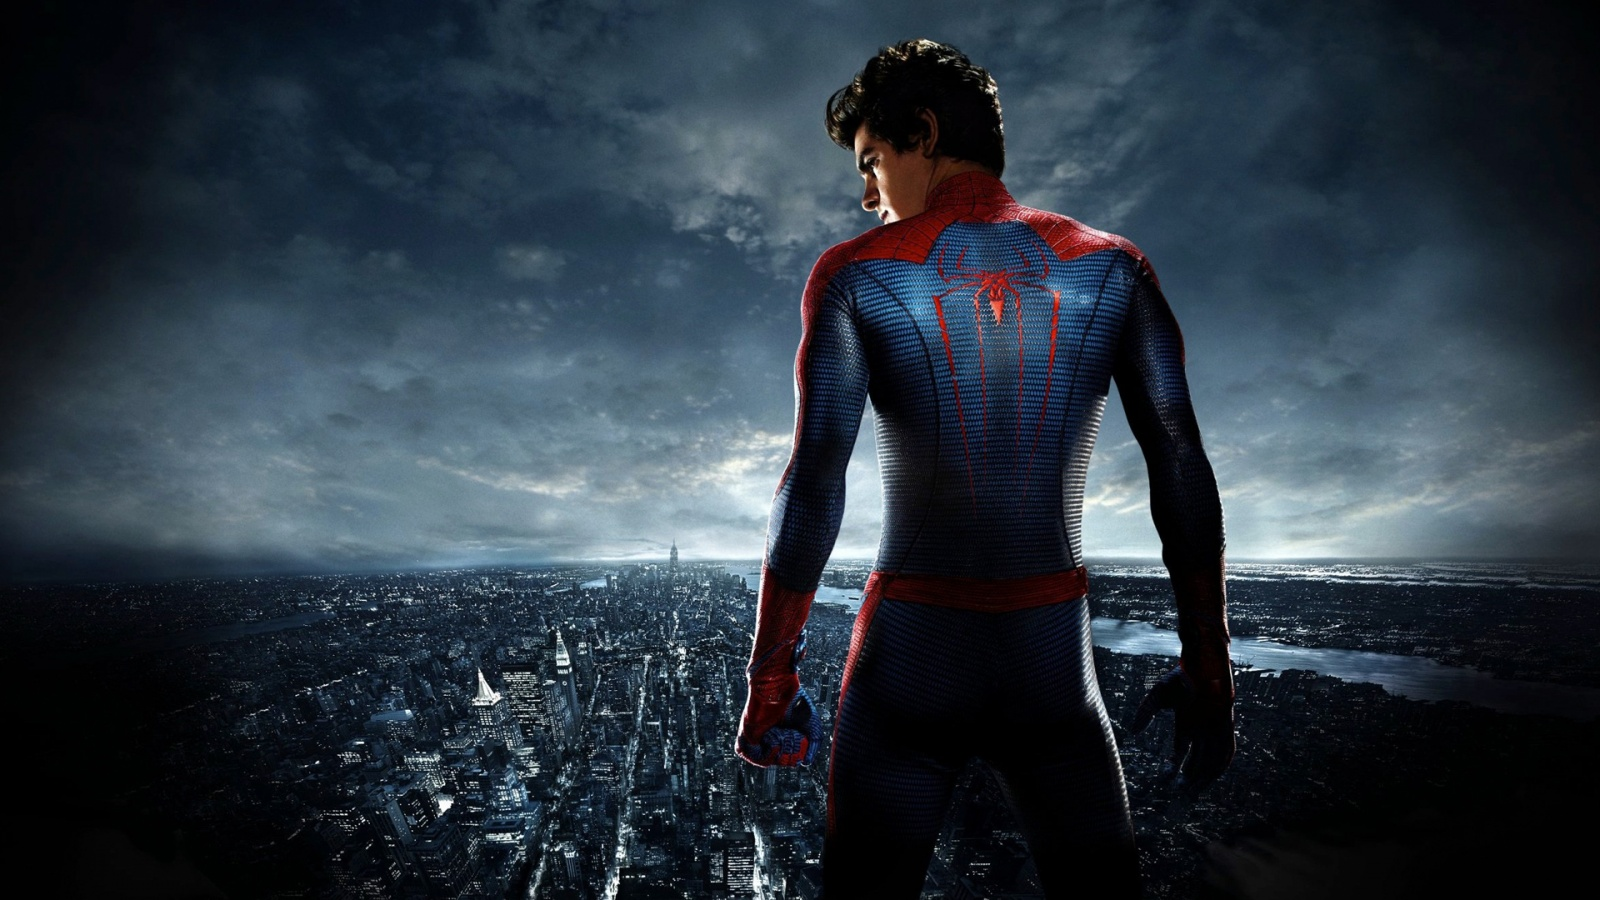 EVERY THING HD WALLPAPERS: Spiderman New HD Wallpapers 2013